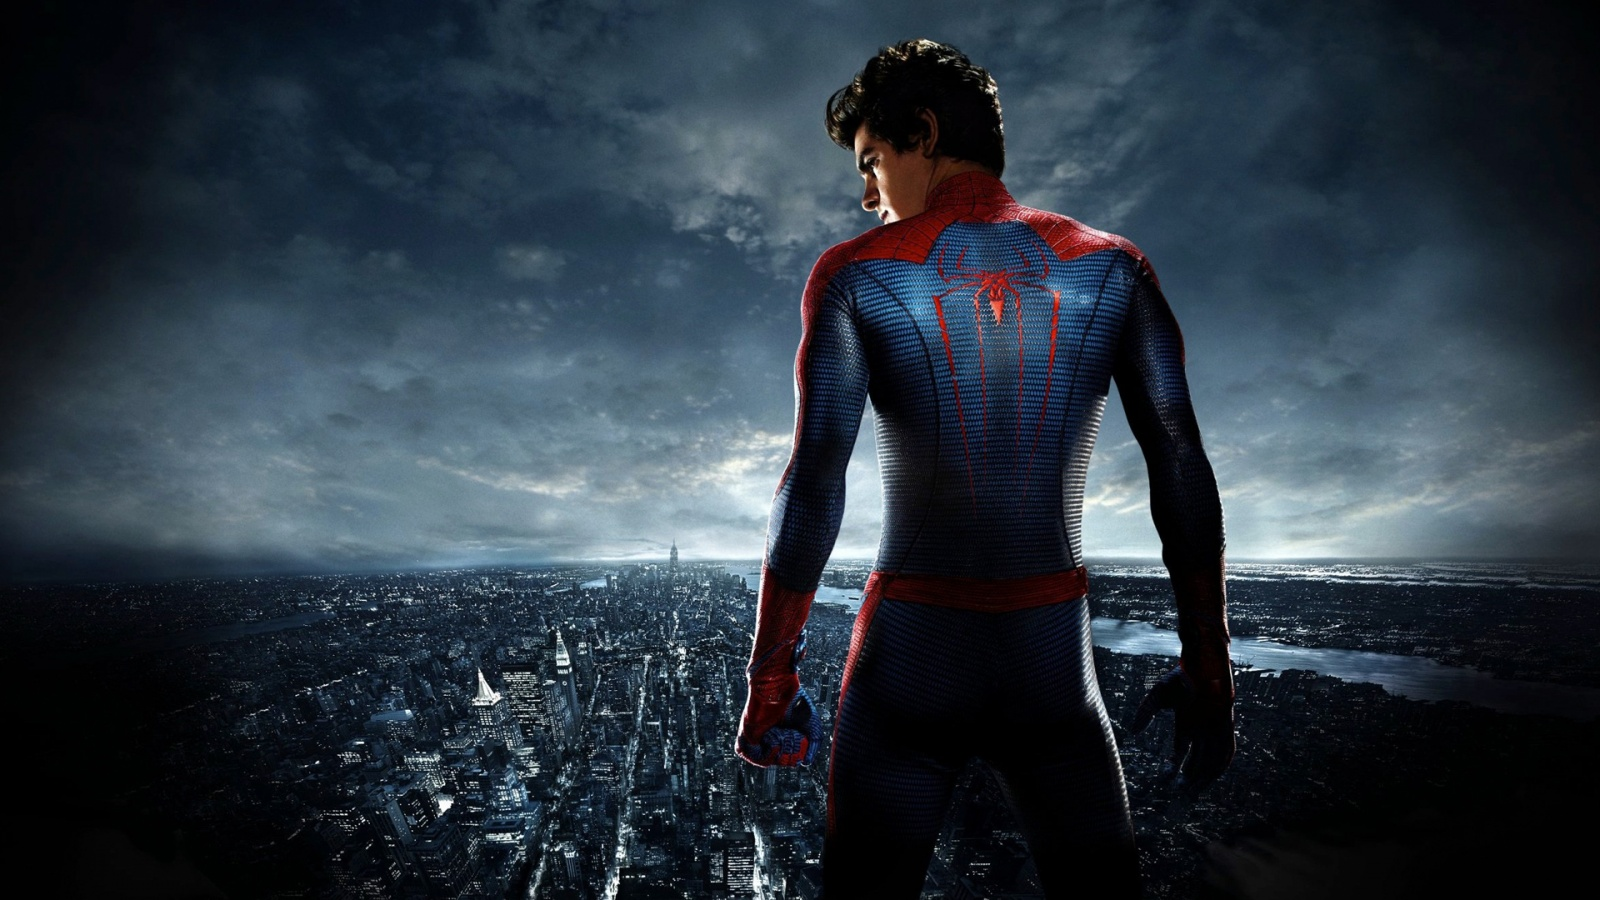 EVERY THING HD WALLPAPERS: Spiderman New HD Wallpapers 2013